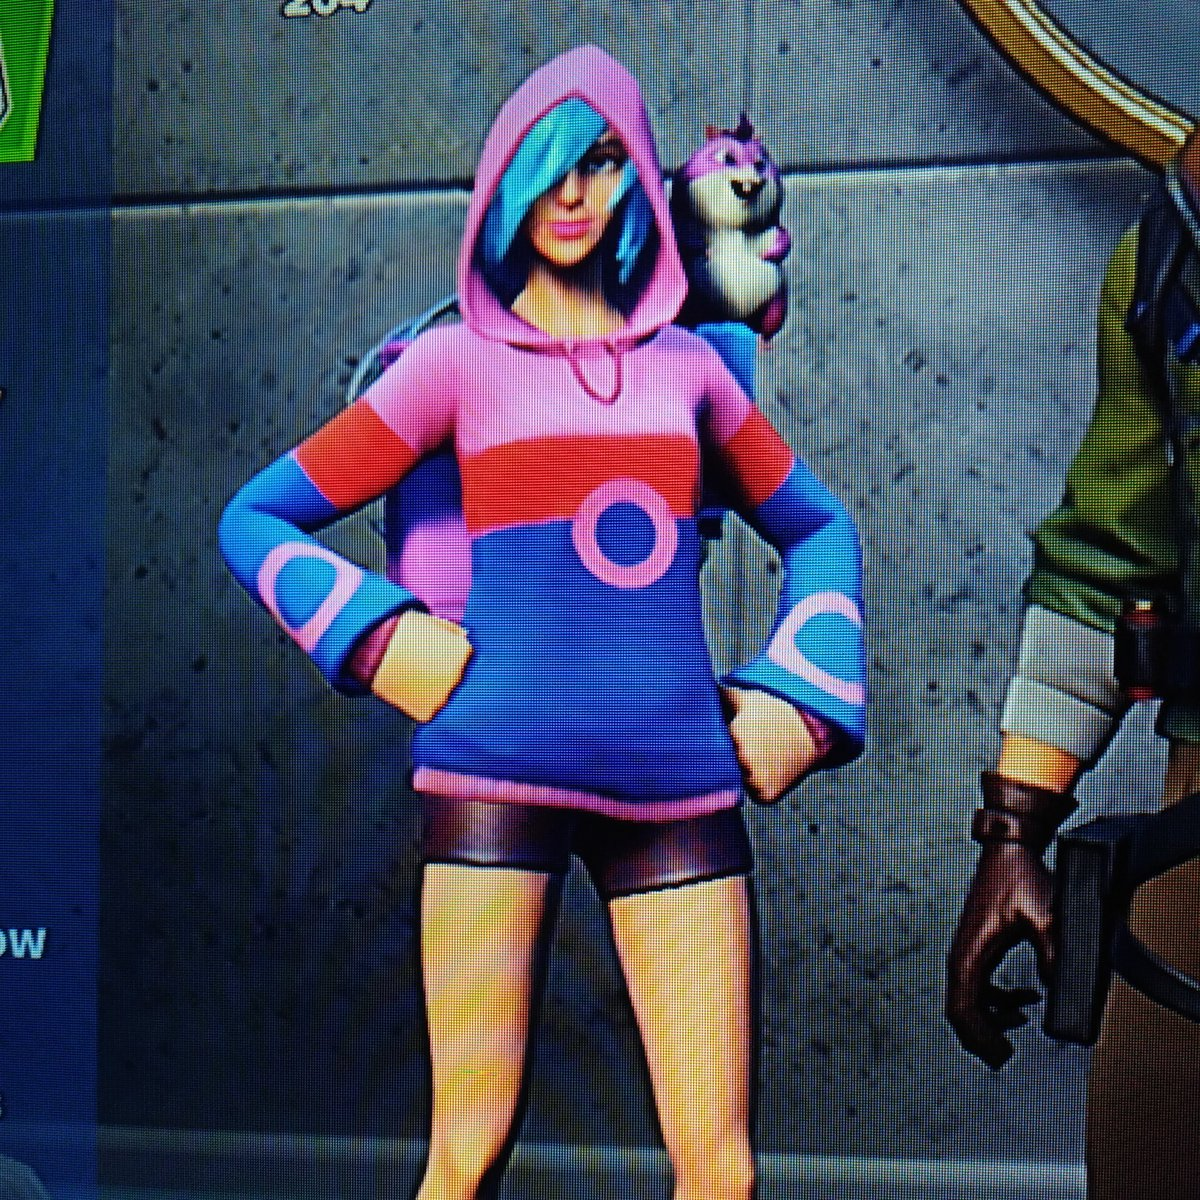 Definitely a #Phish #Fortnite skin.... https://t.co/ZnSie1tNCZ